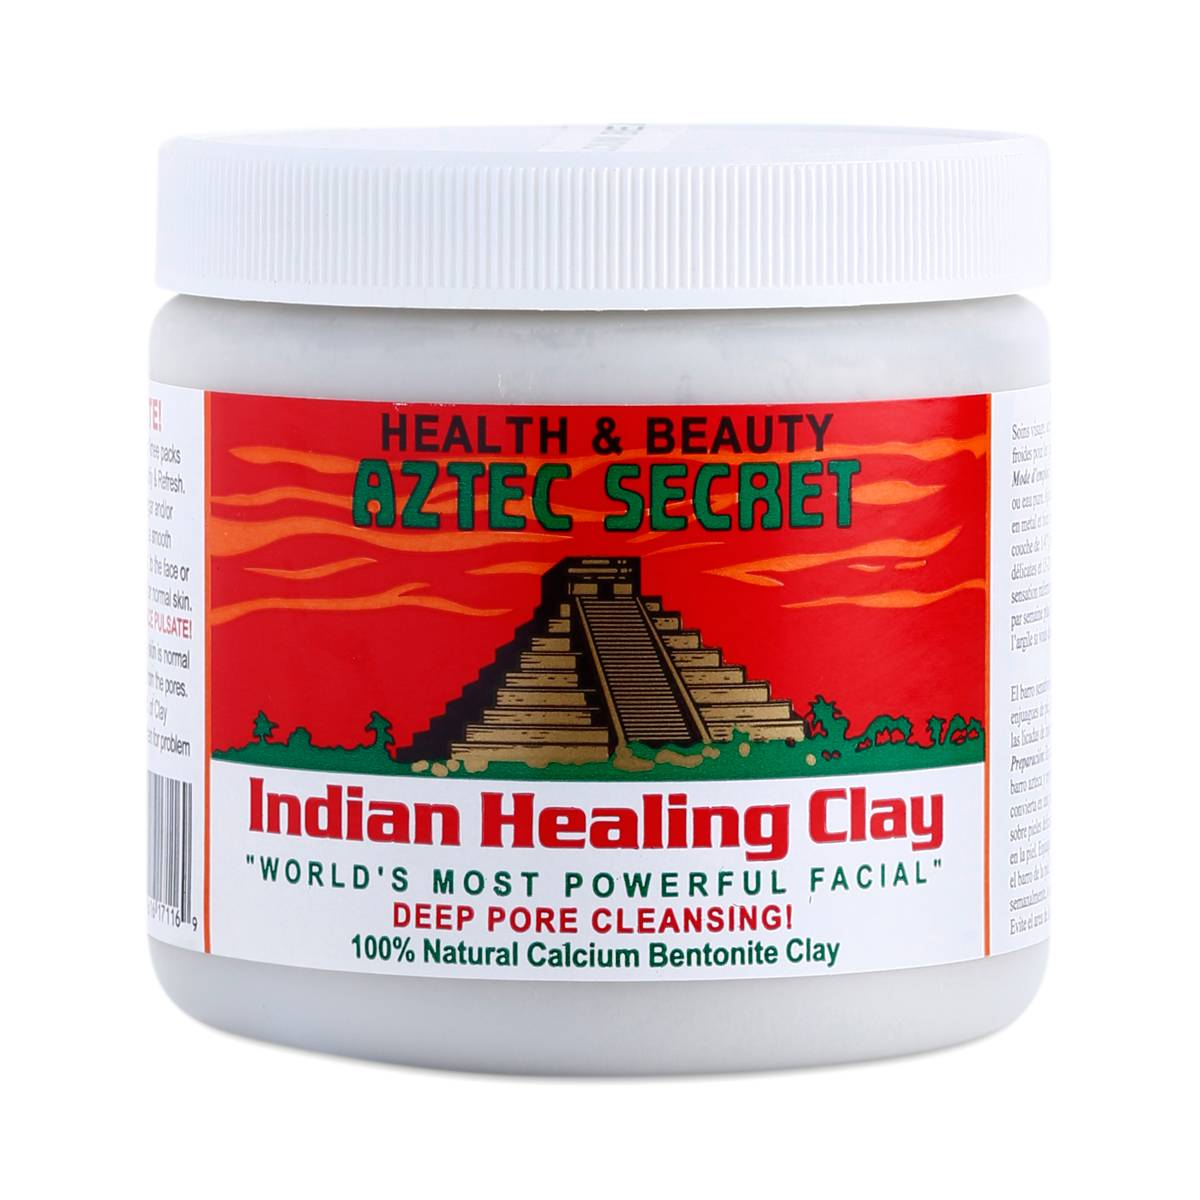 bc2d312bf652 Indian Healing Clay by Aztec Secret - Thrive Market